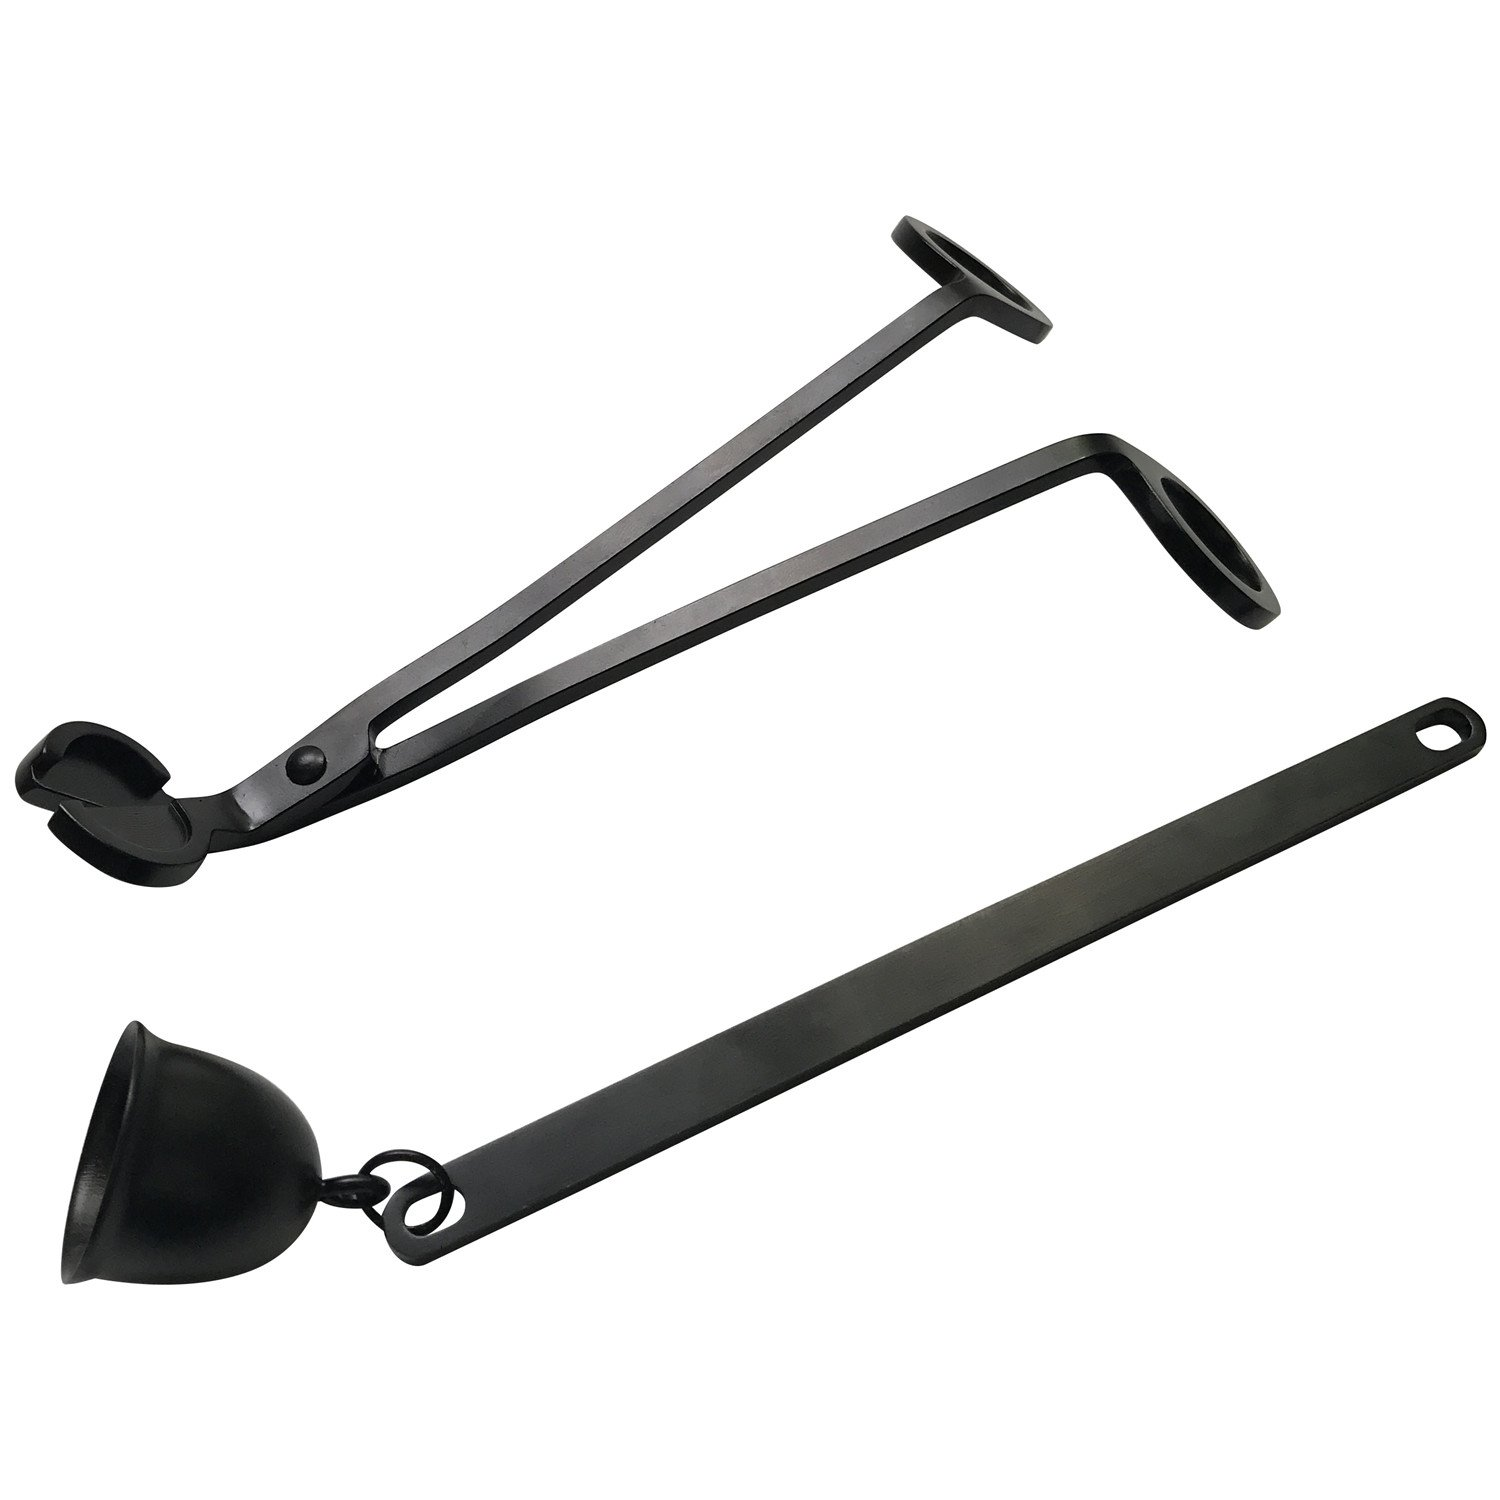 Viscacha Matte Black Stainless Steel Candle Wick Trimmer and Candle Snuffer Set by Viscacha